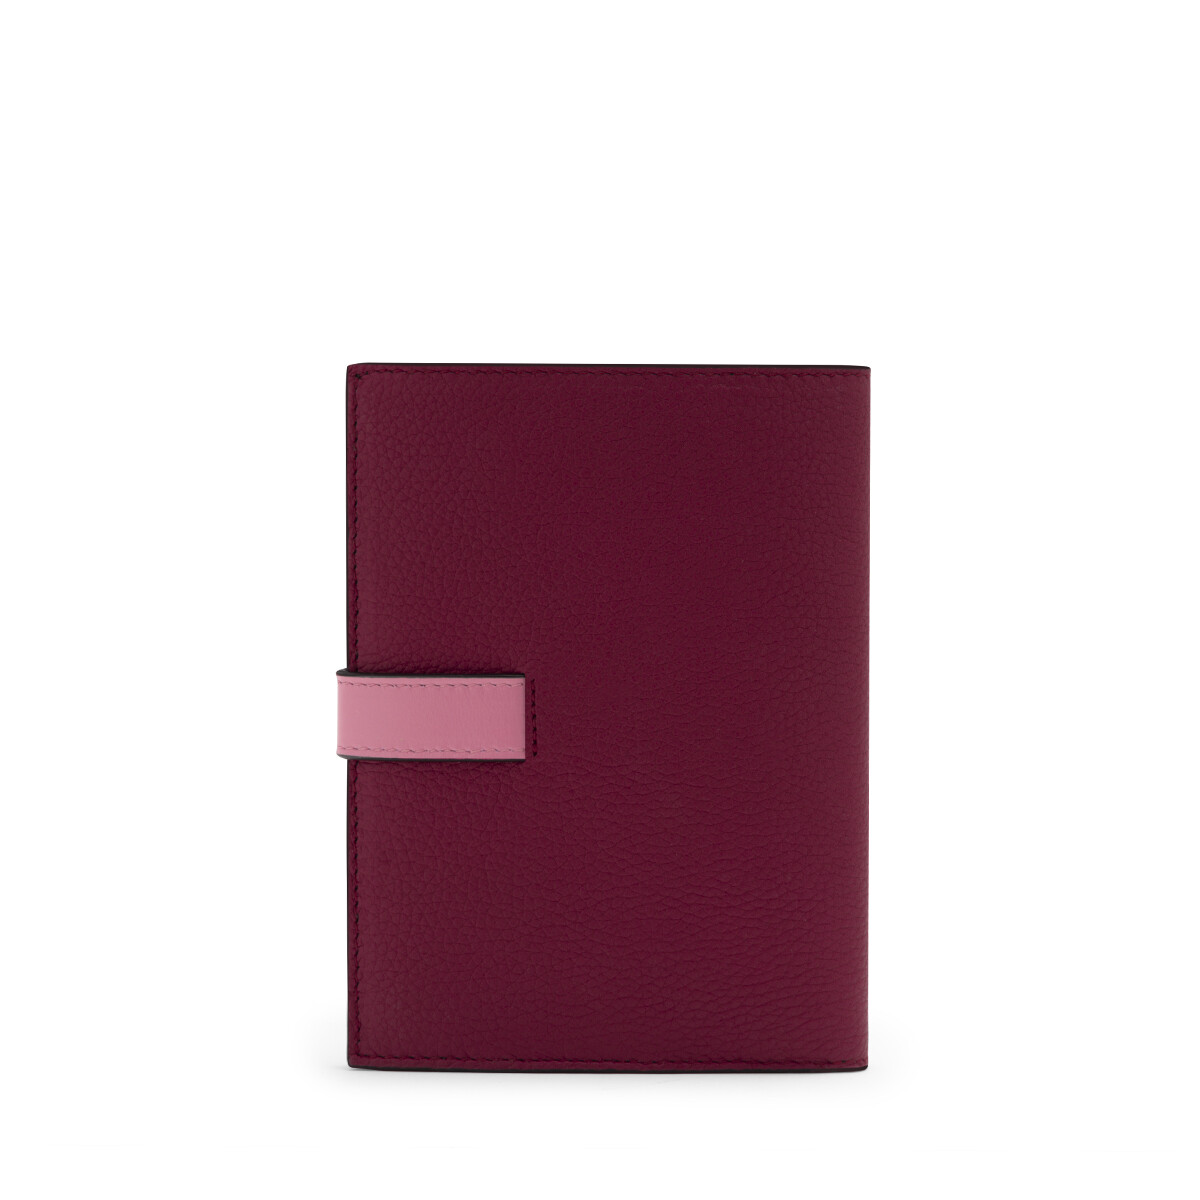 LOEWE Medium Vertical Wallet Wild Rose/Raspberry front